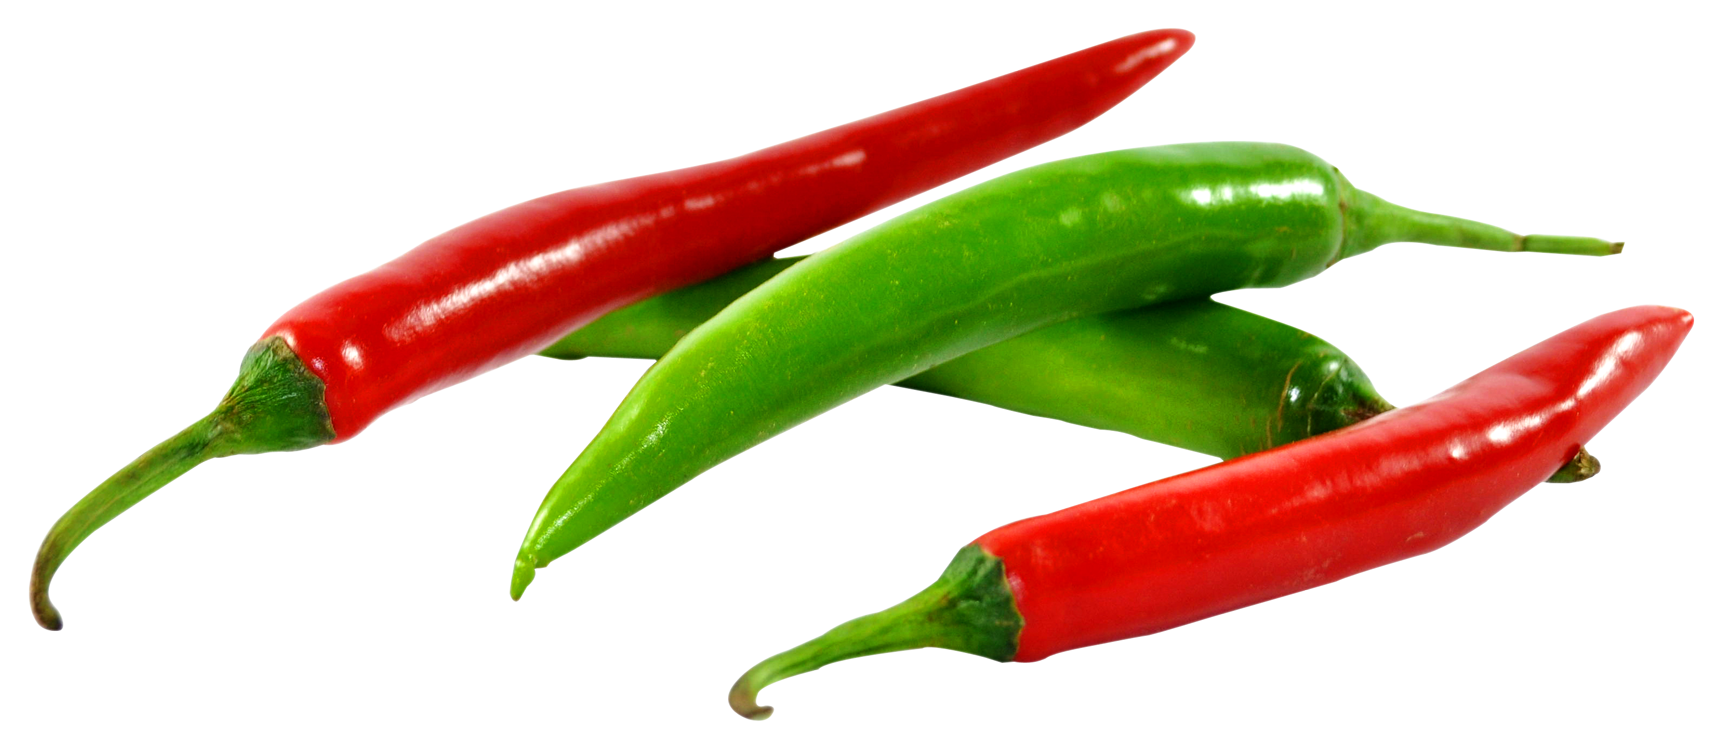 Green chili png. And red chilli image